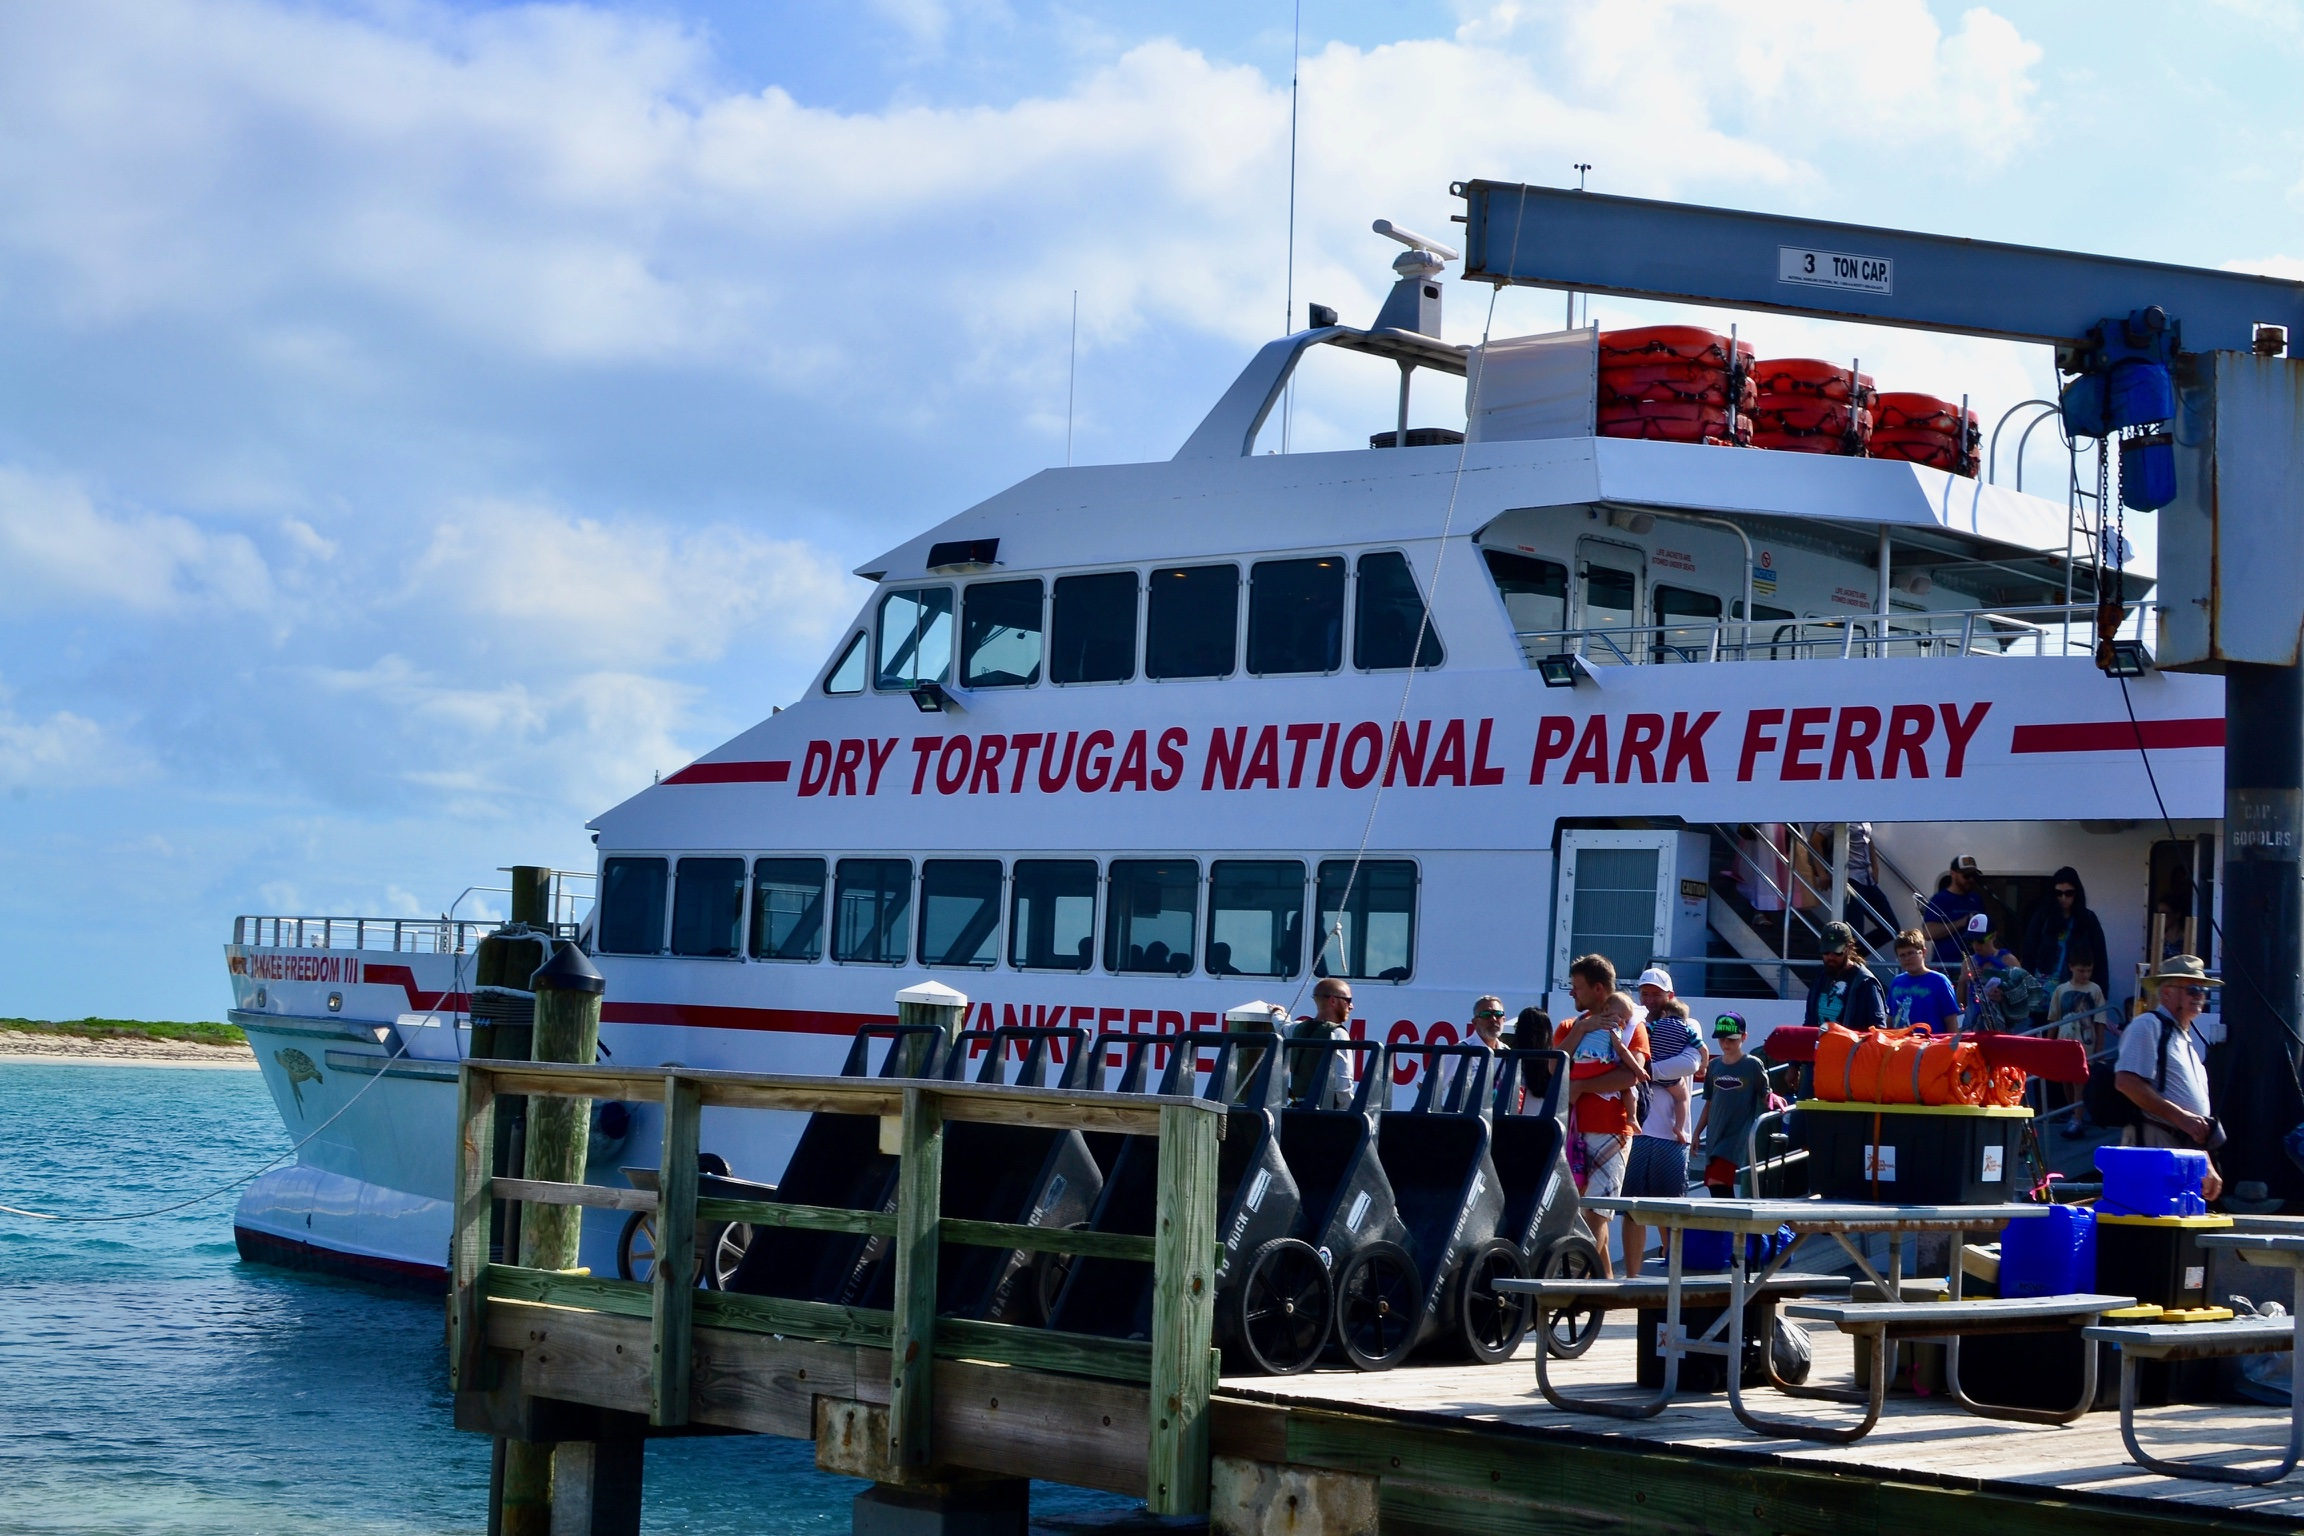 Yankee Freedom III Ferry for the Dry Tortugas